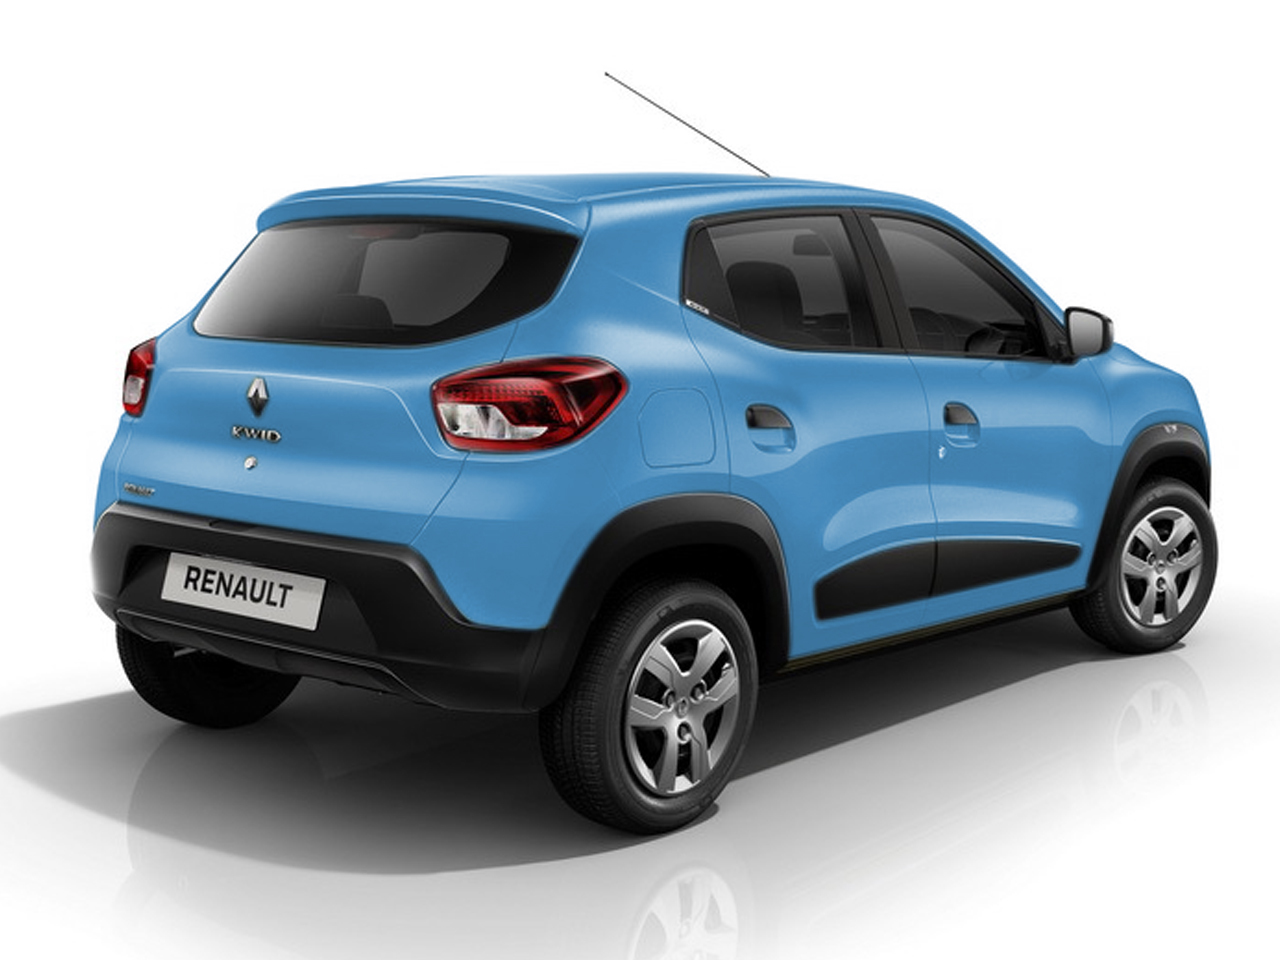 renault kwid la citadine 3 500 euros en inde photo 2 l 39 argus. Black Bedroom Furniture Sets. Home Design Ideas